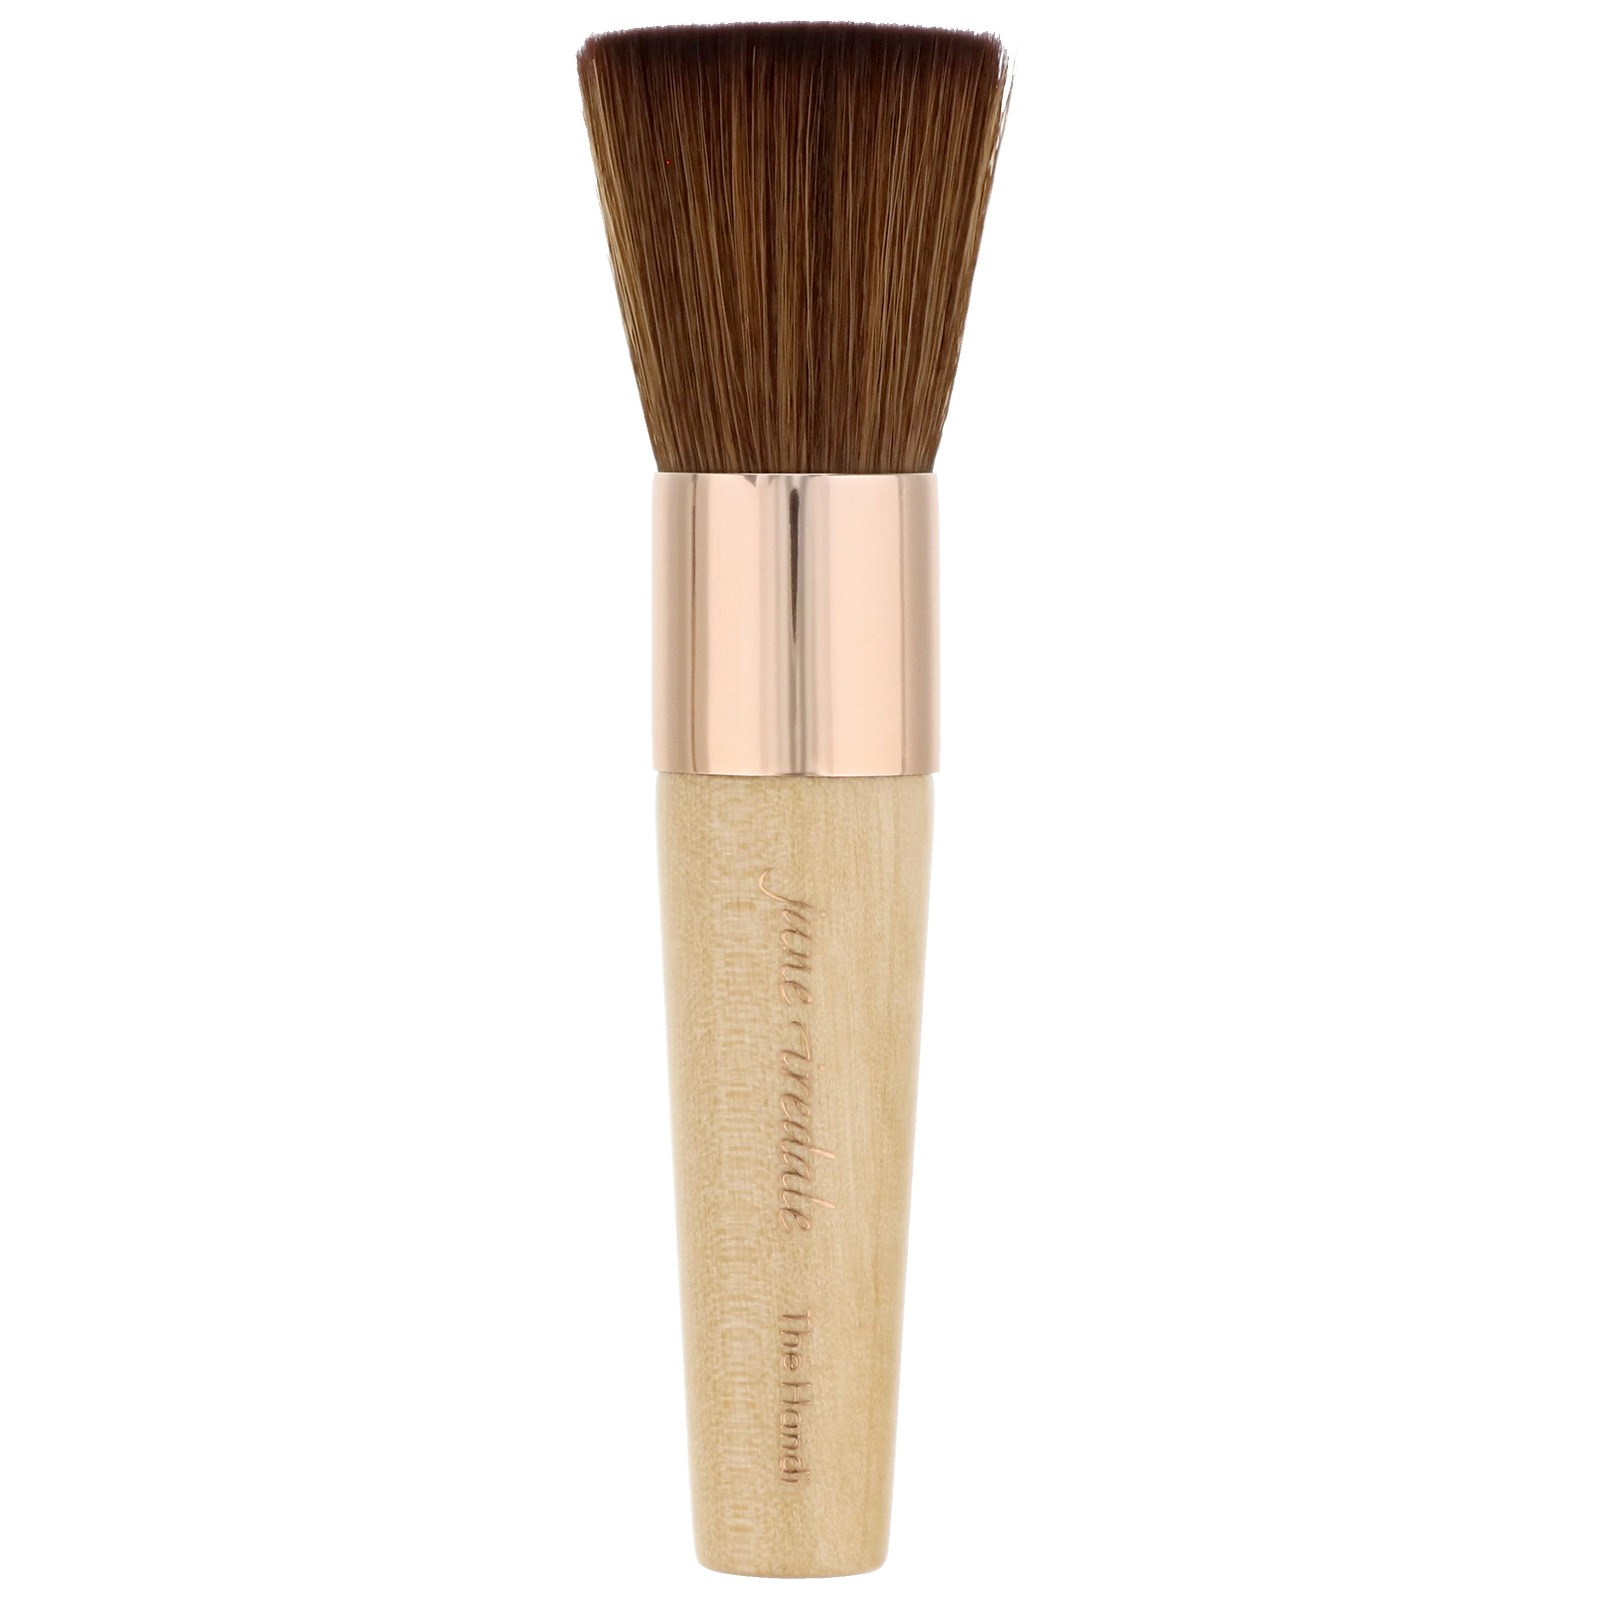 Jane Iredale Brushes The Handi Brush Rose Gold